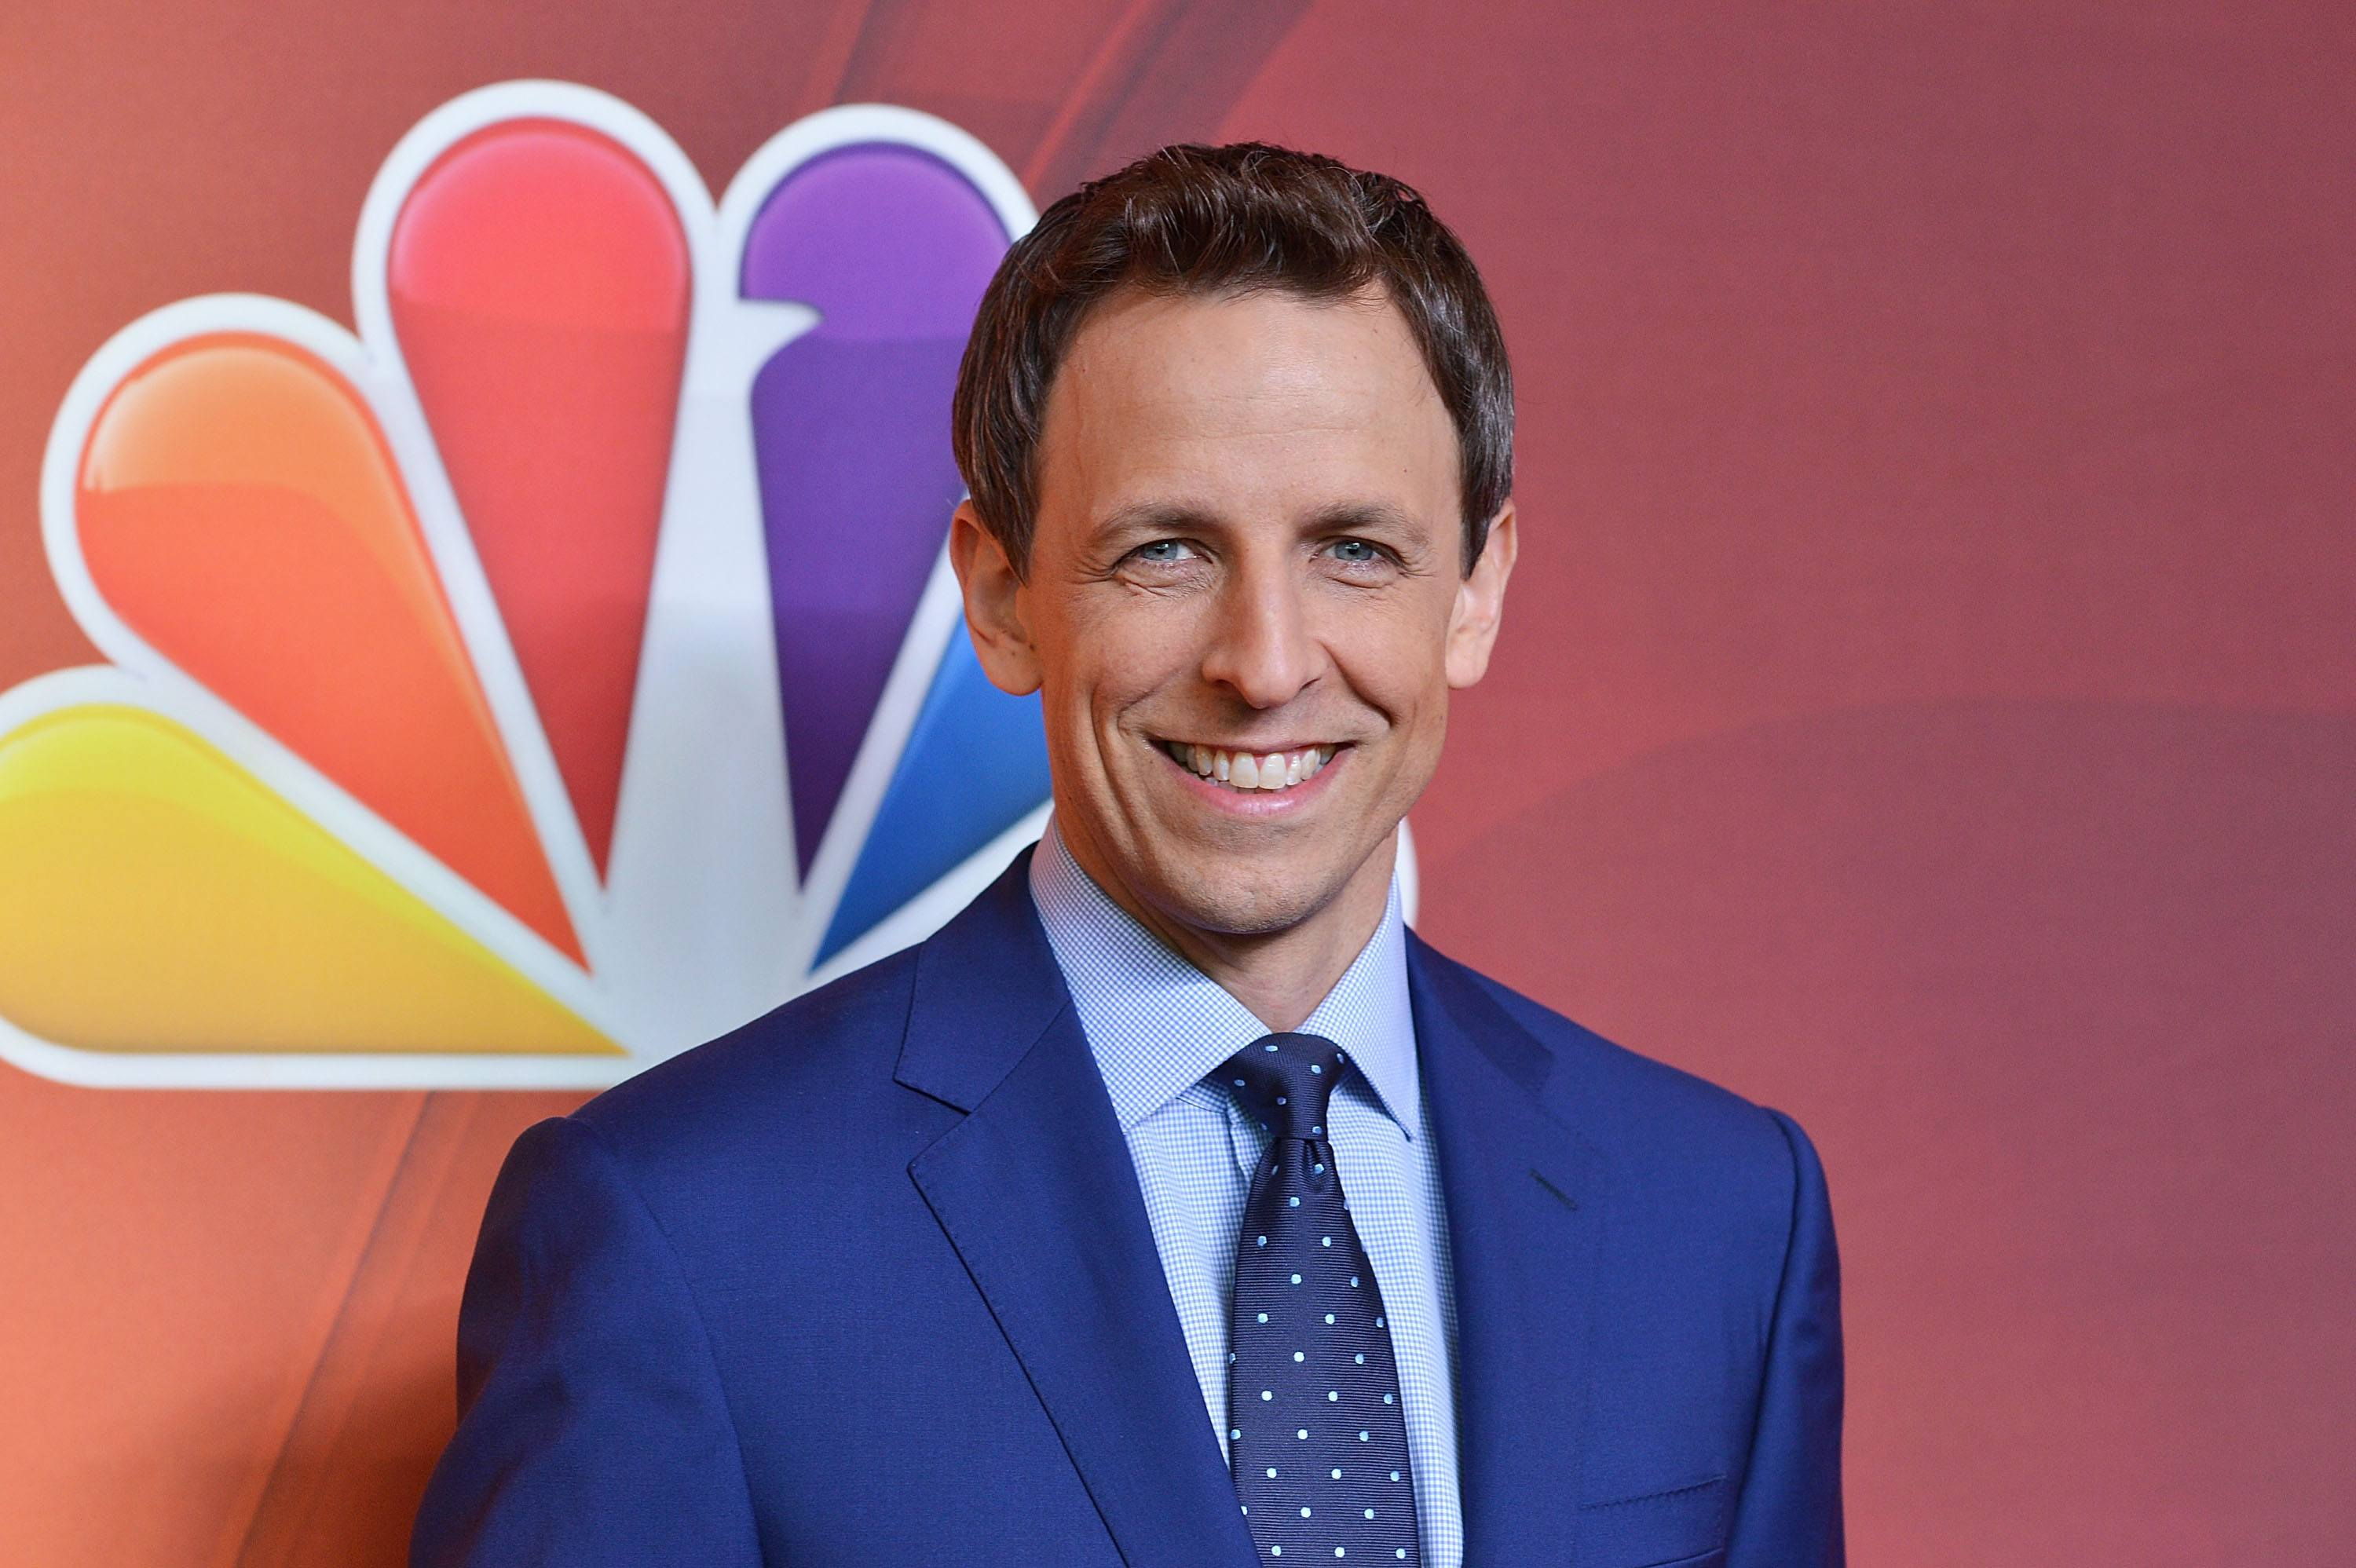 The Saturday Night Live Alum Is Earning Big For His Talk Show